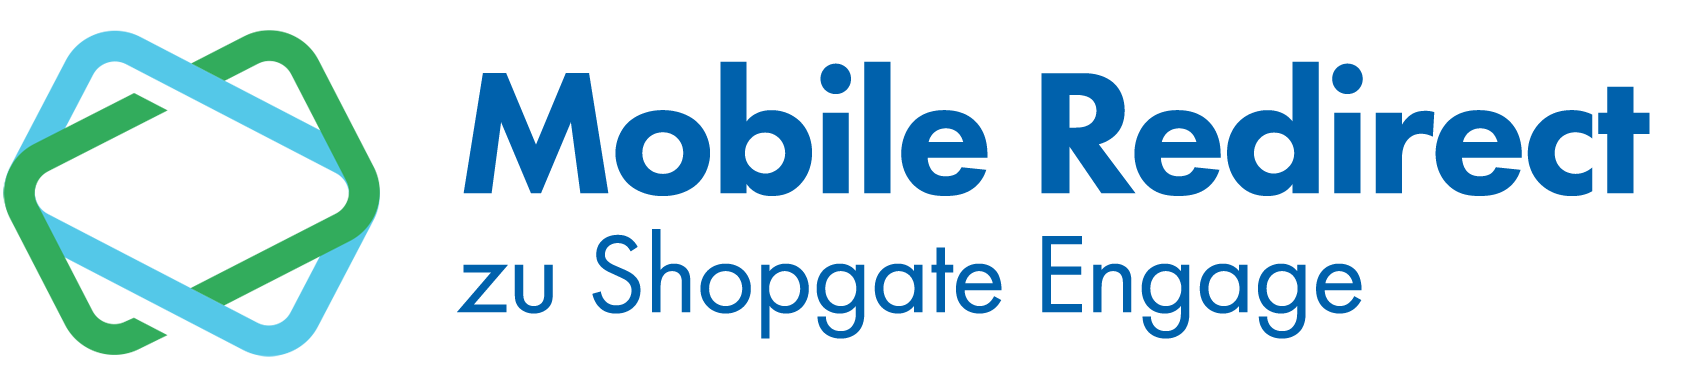 Shopgate Mobile Redirect